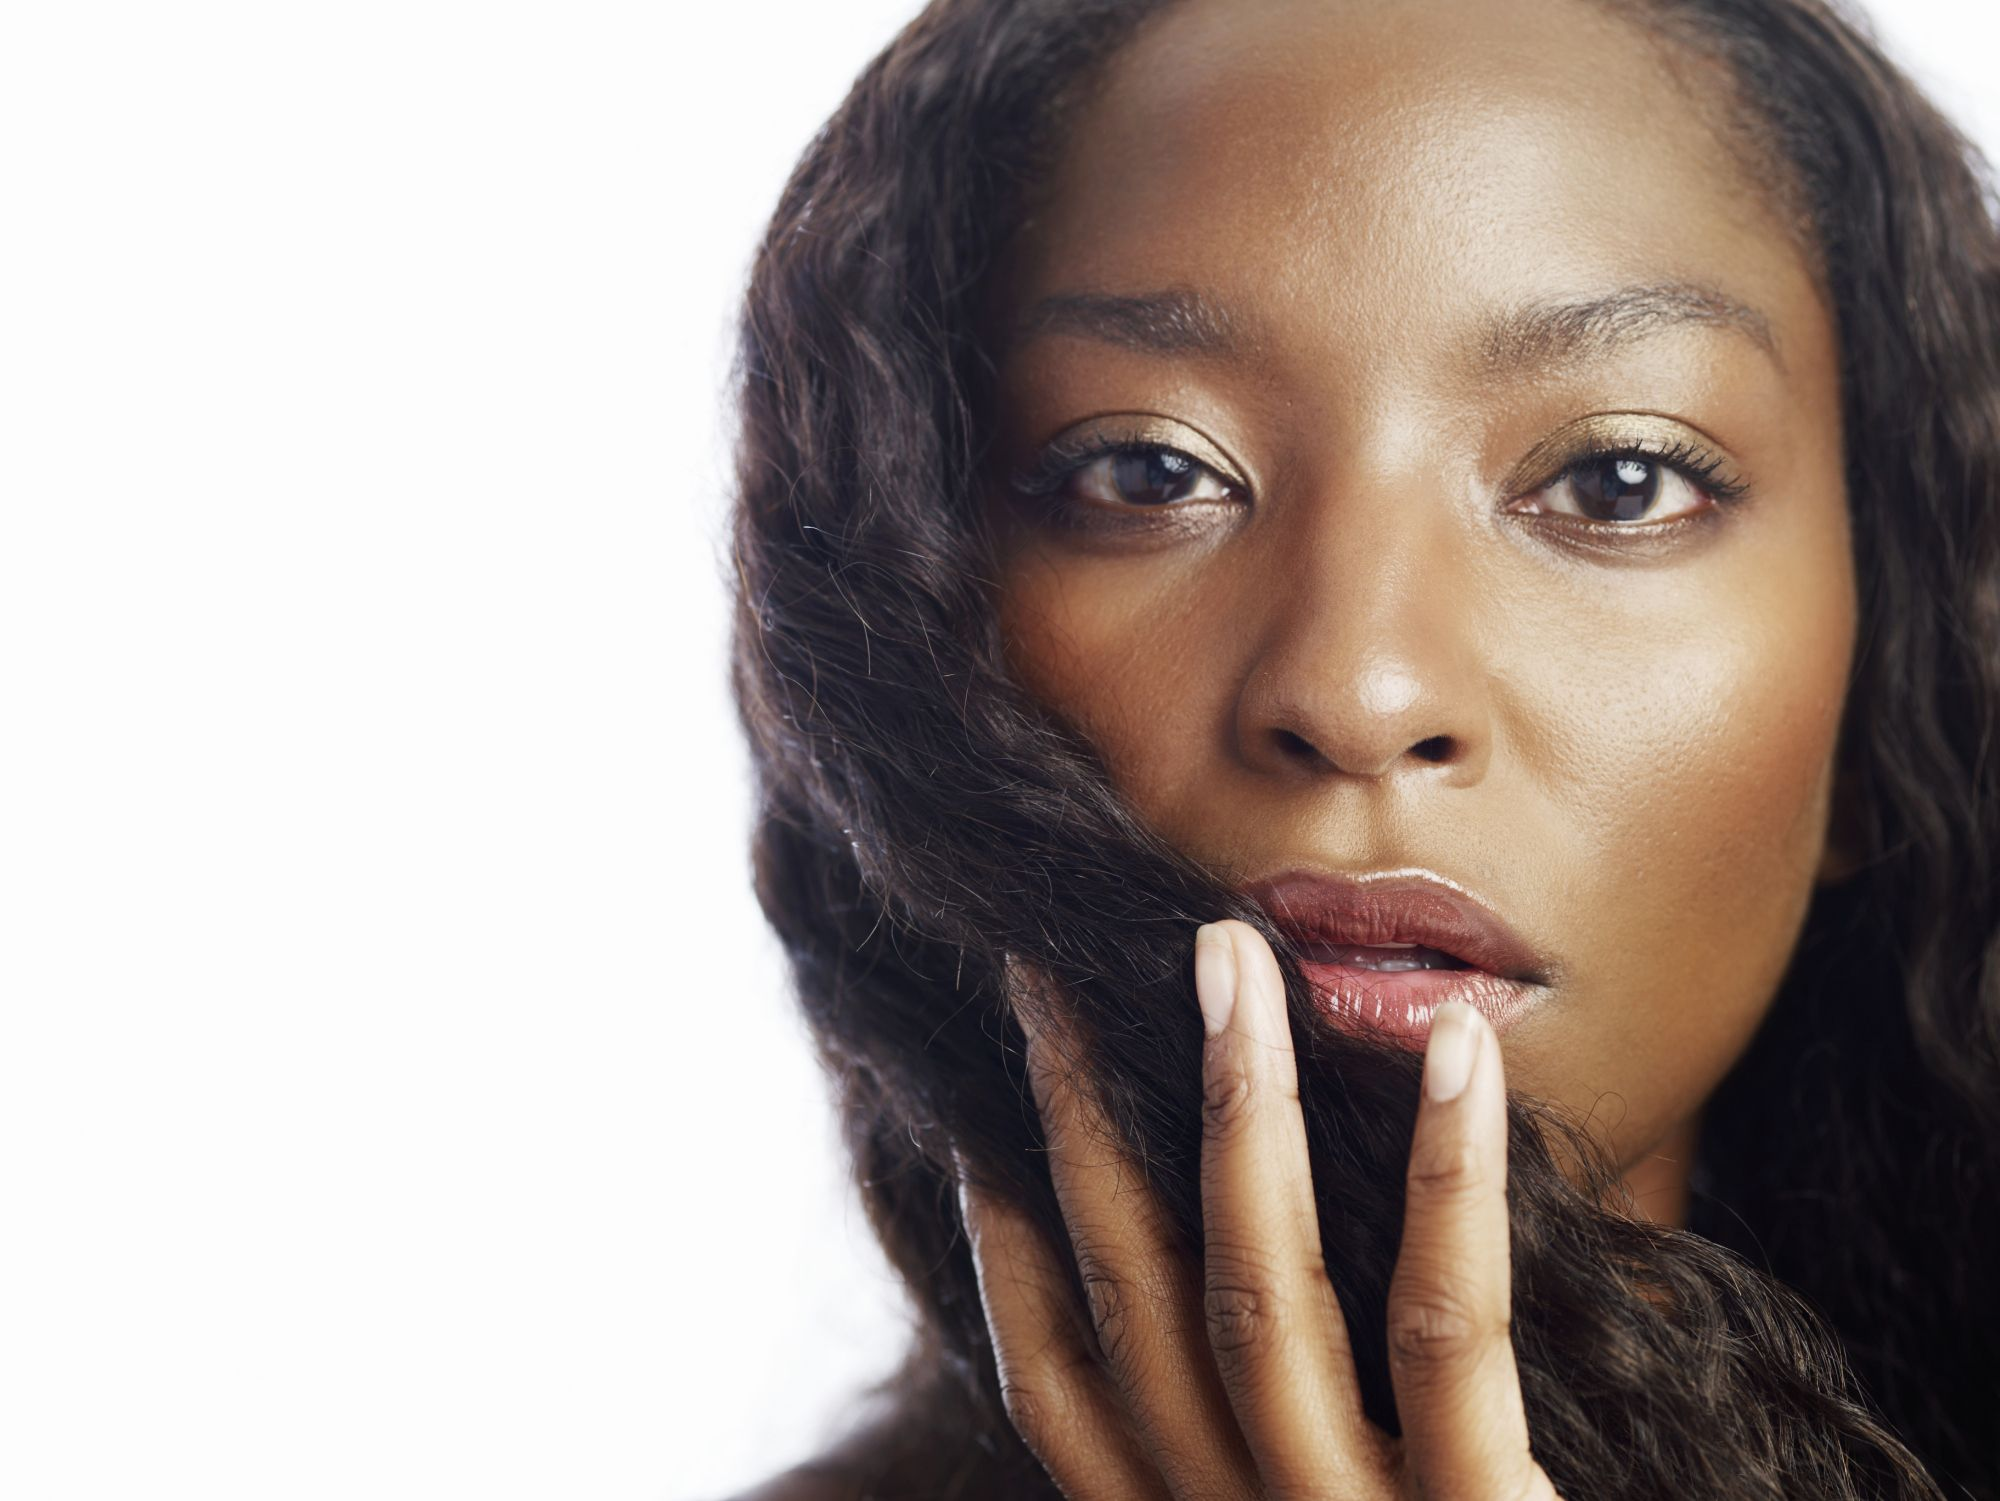 All Natural Hair Styles For Black Hair: Is There An All Natural Relaxer For Black Hair